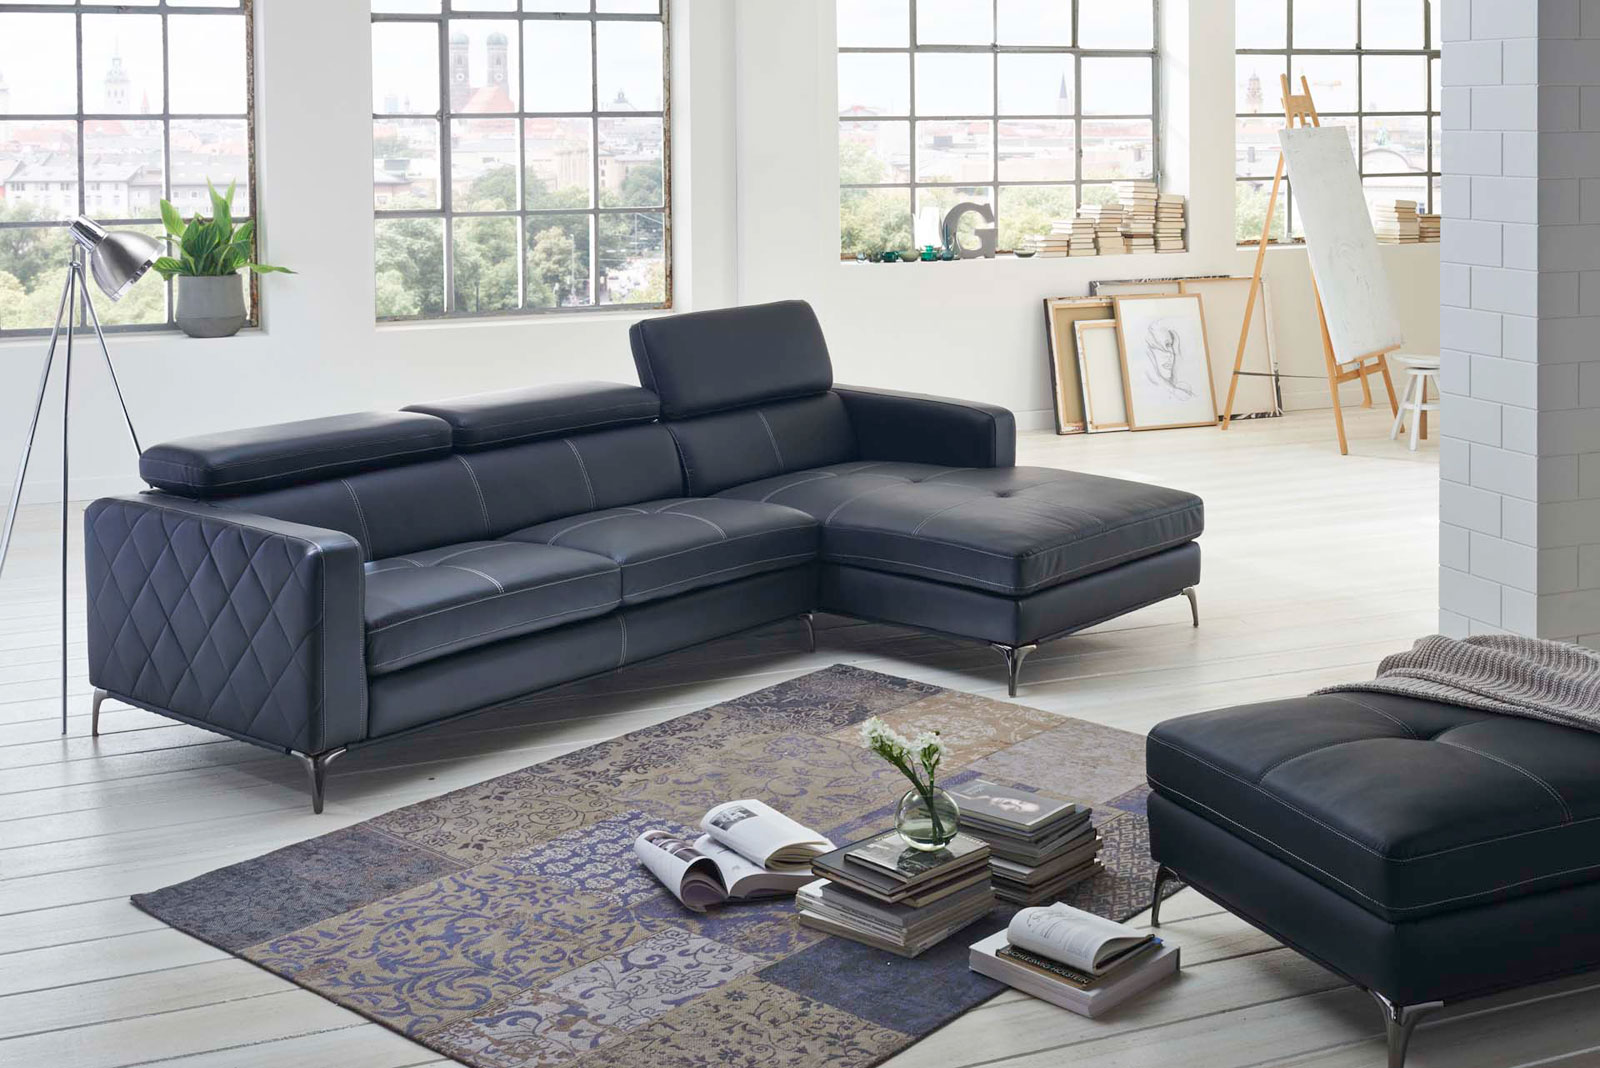 sale sofa ecksofa anthrazit ottomane rechts 300 x 132 cm dario. Black Bedroom Furniture Sets. Home Design Ideas